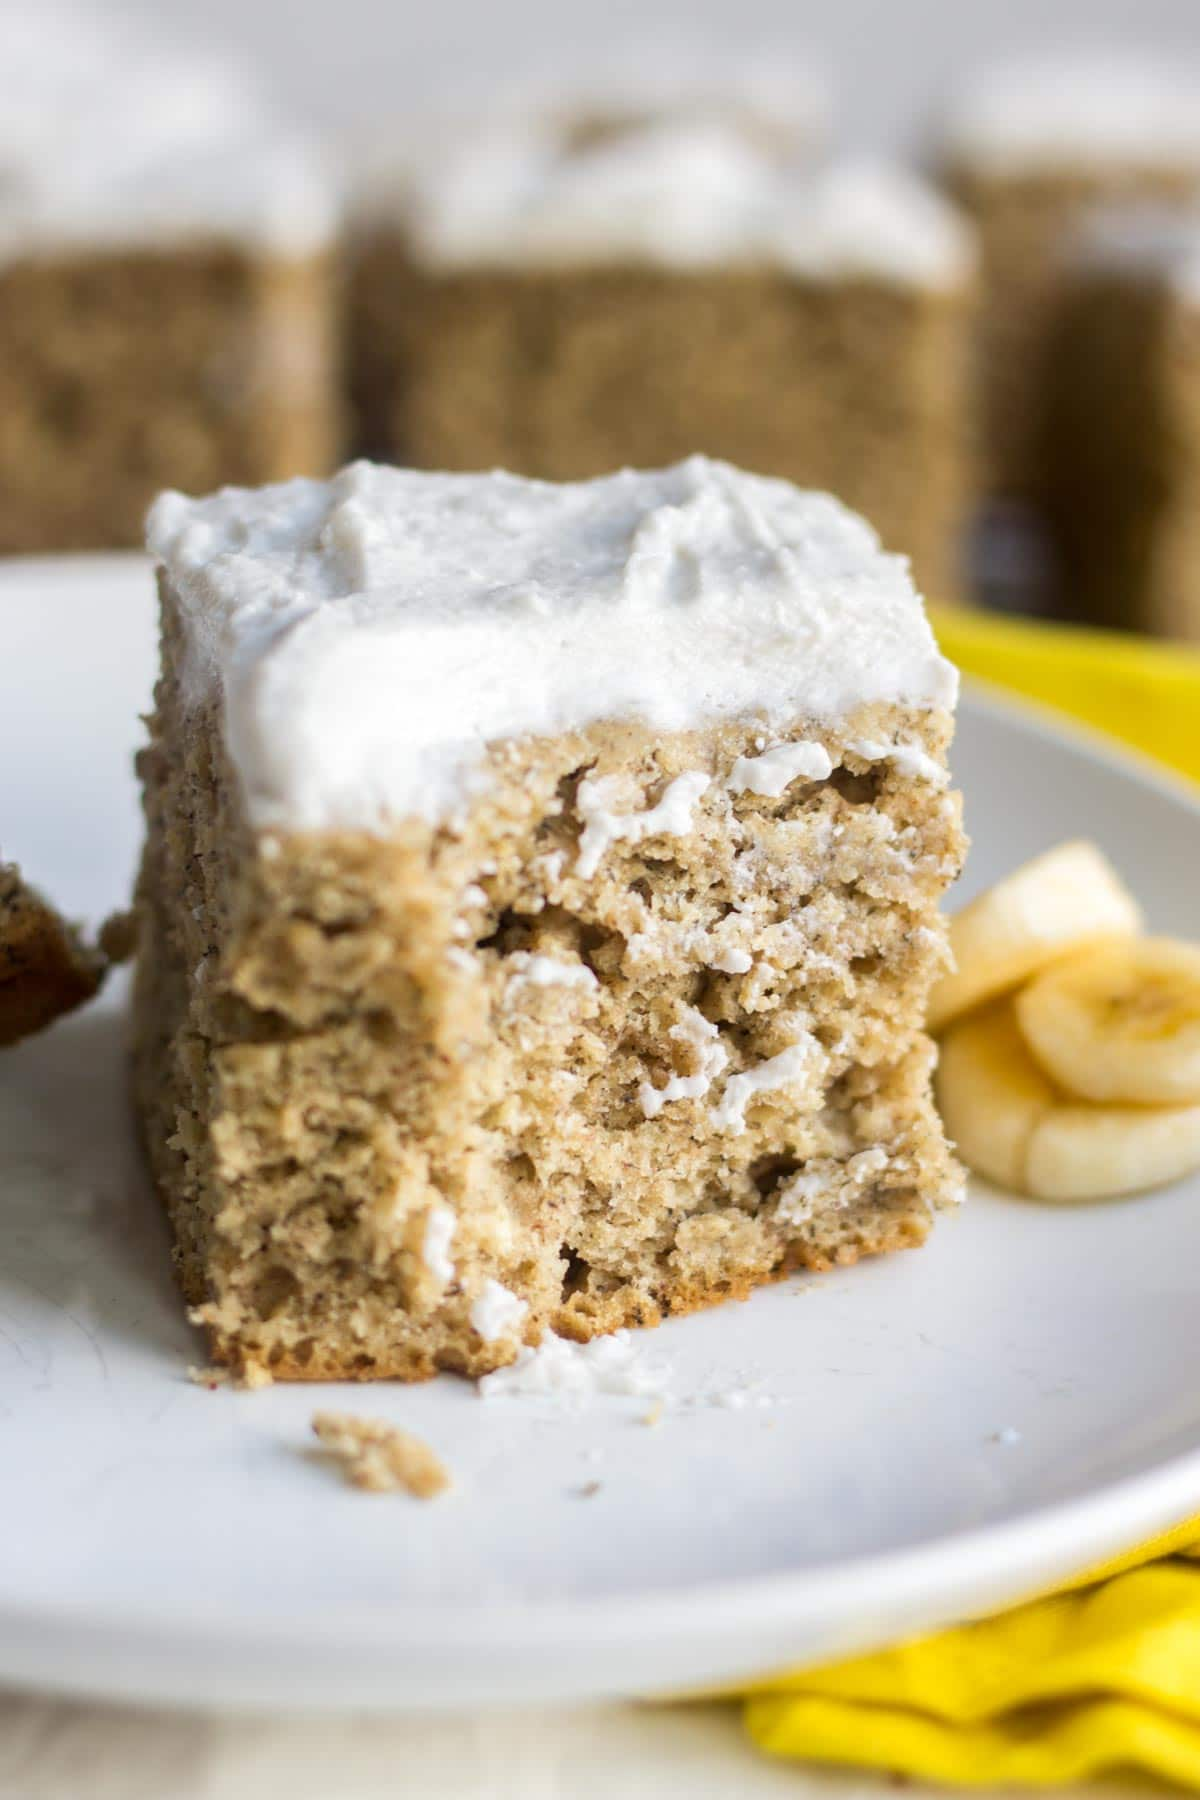 healthy banana cake recipe on a white plate with a bite taken out